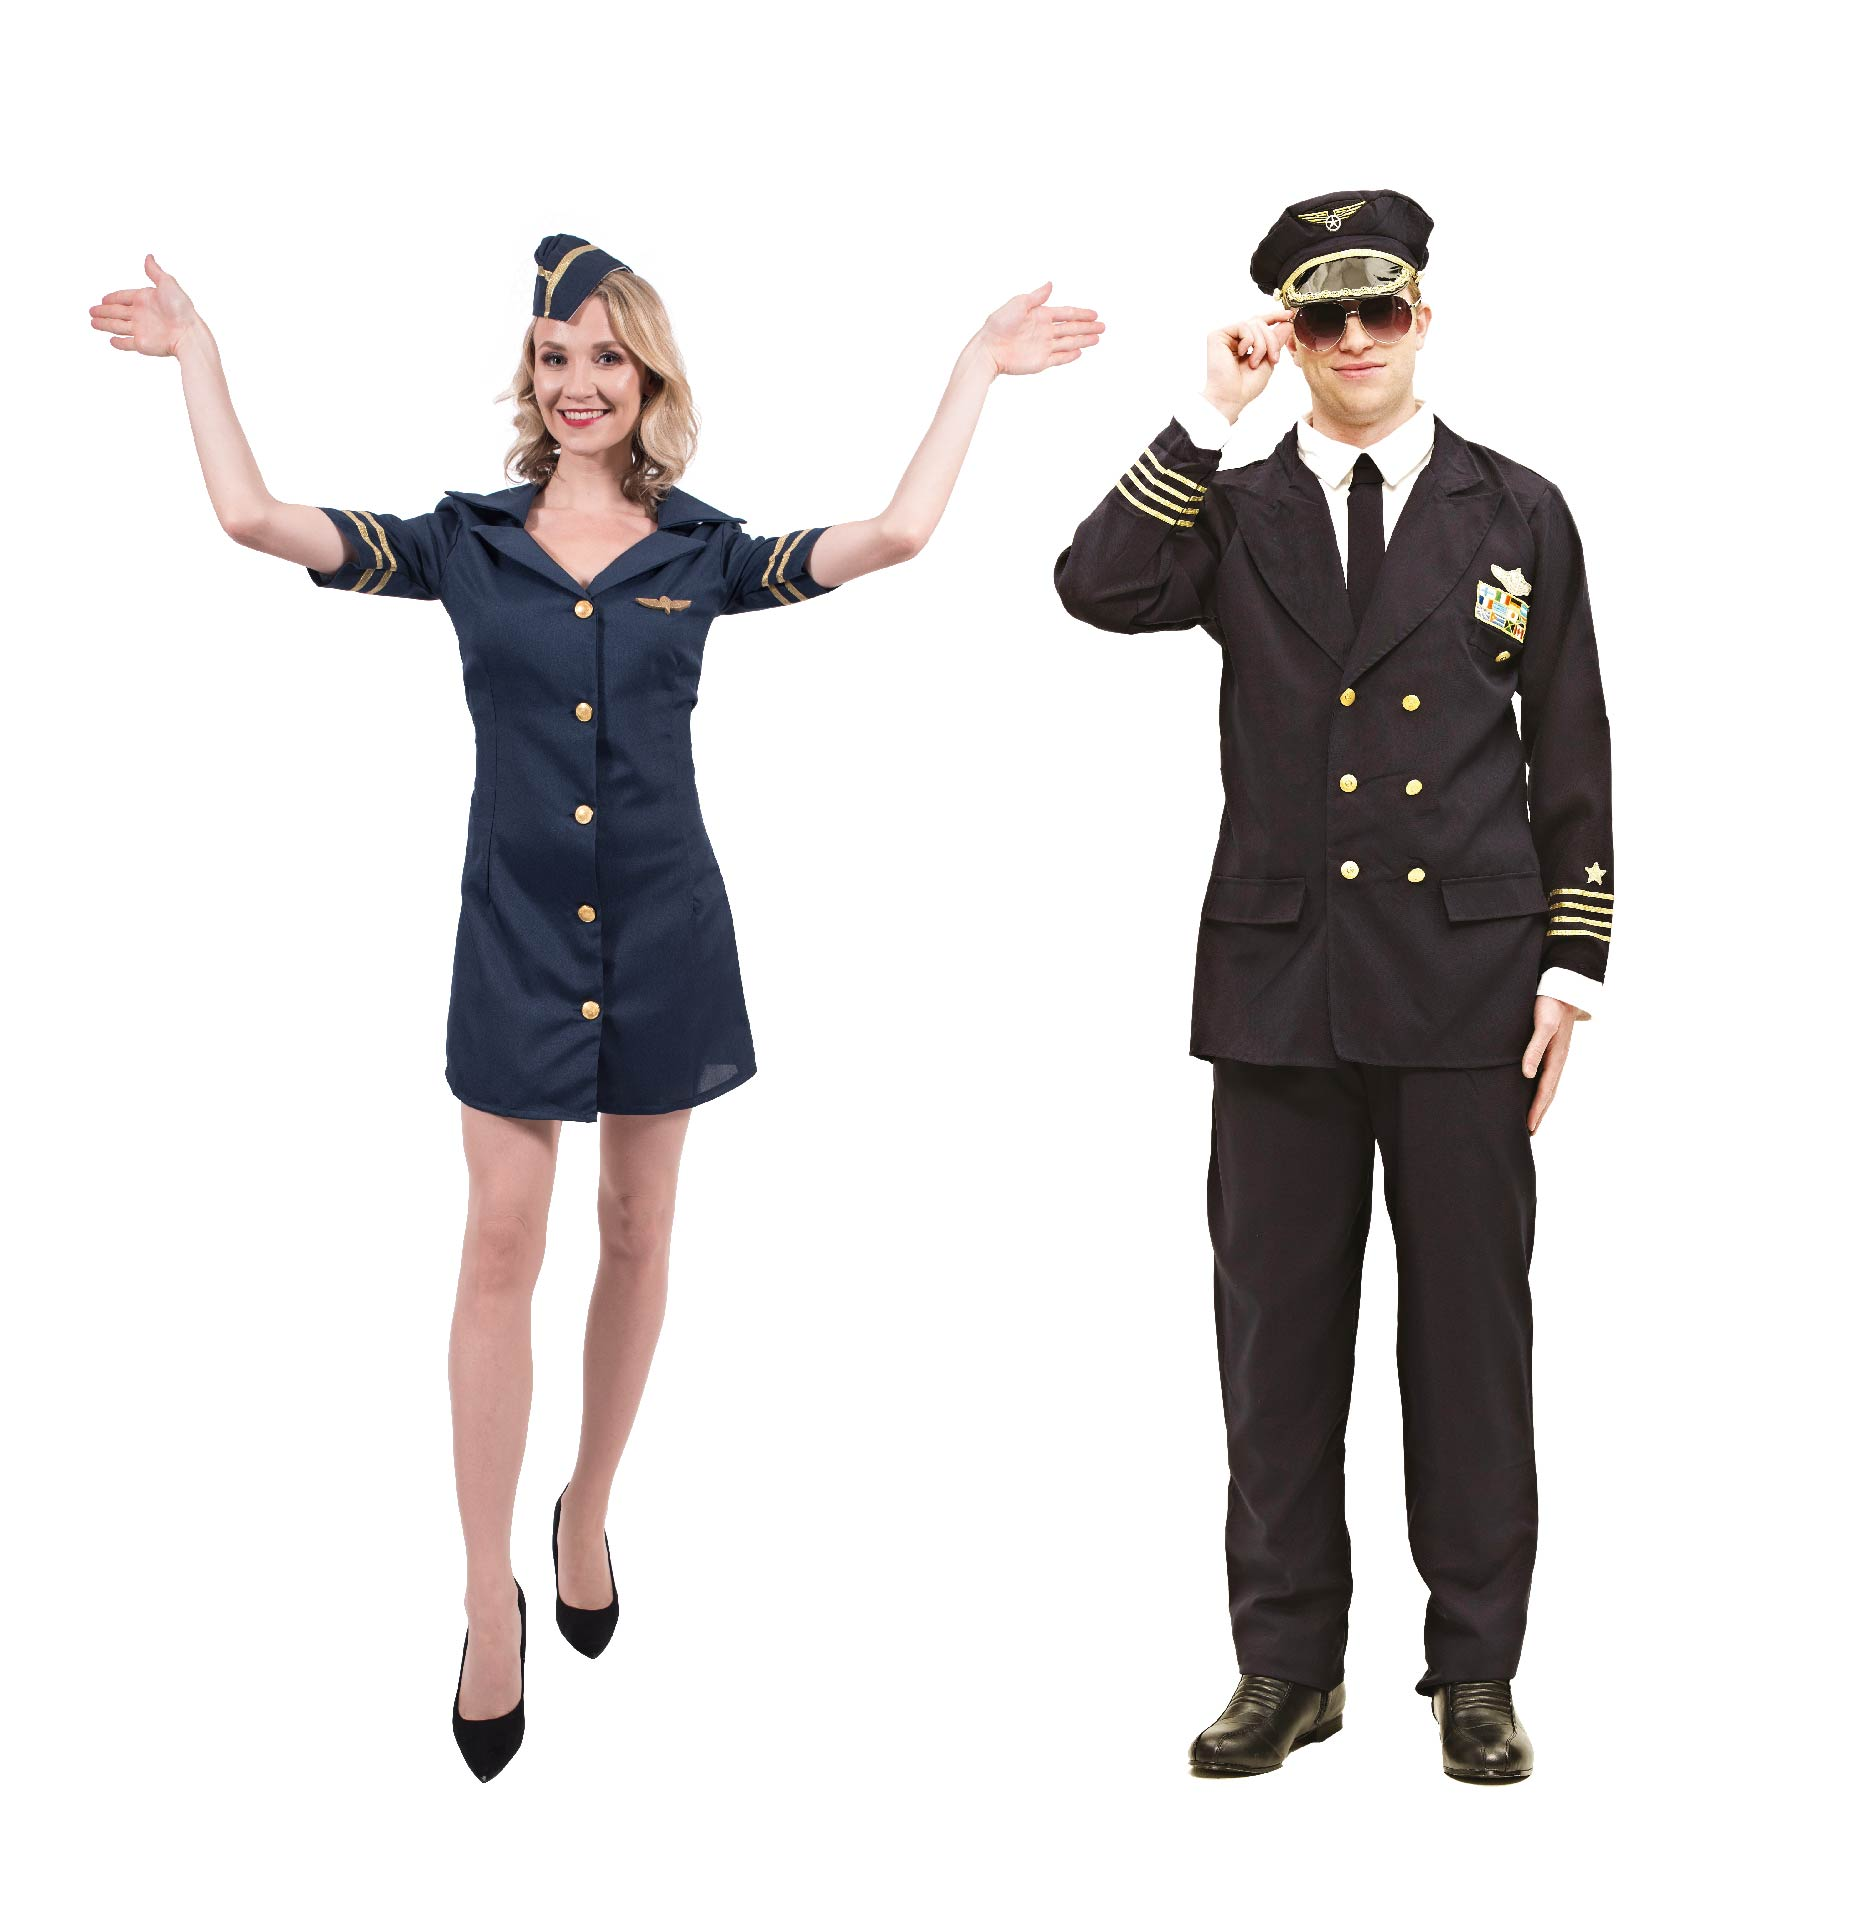 Man and woman wearing pilot and air hostess costumes.